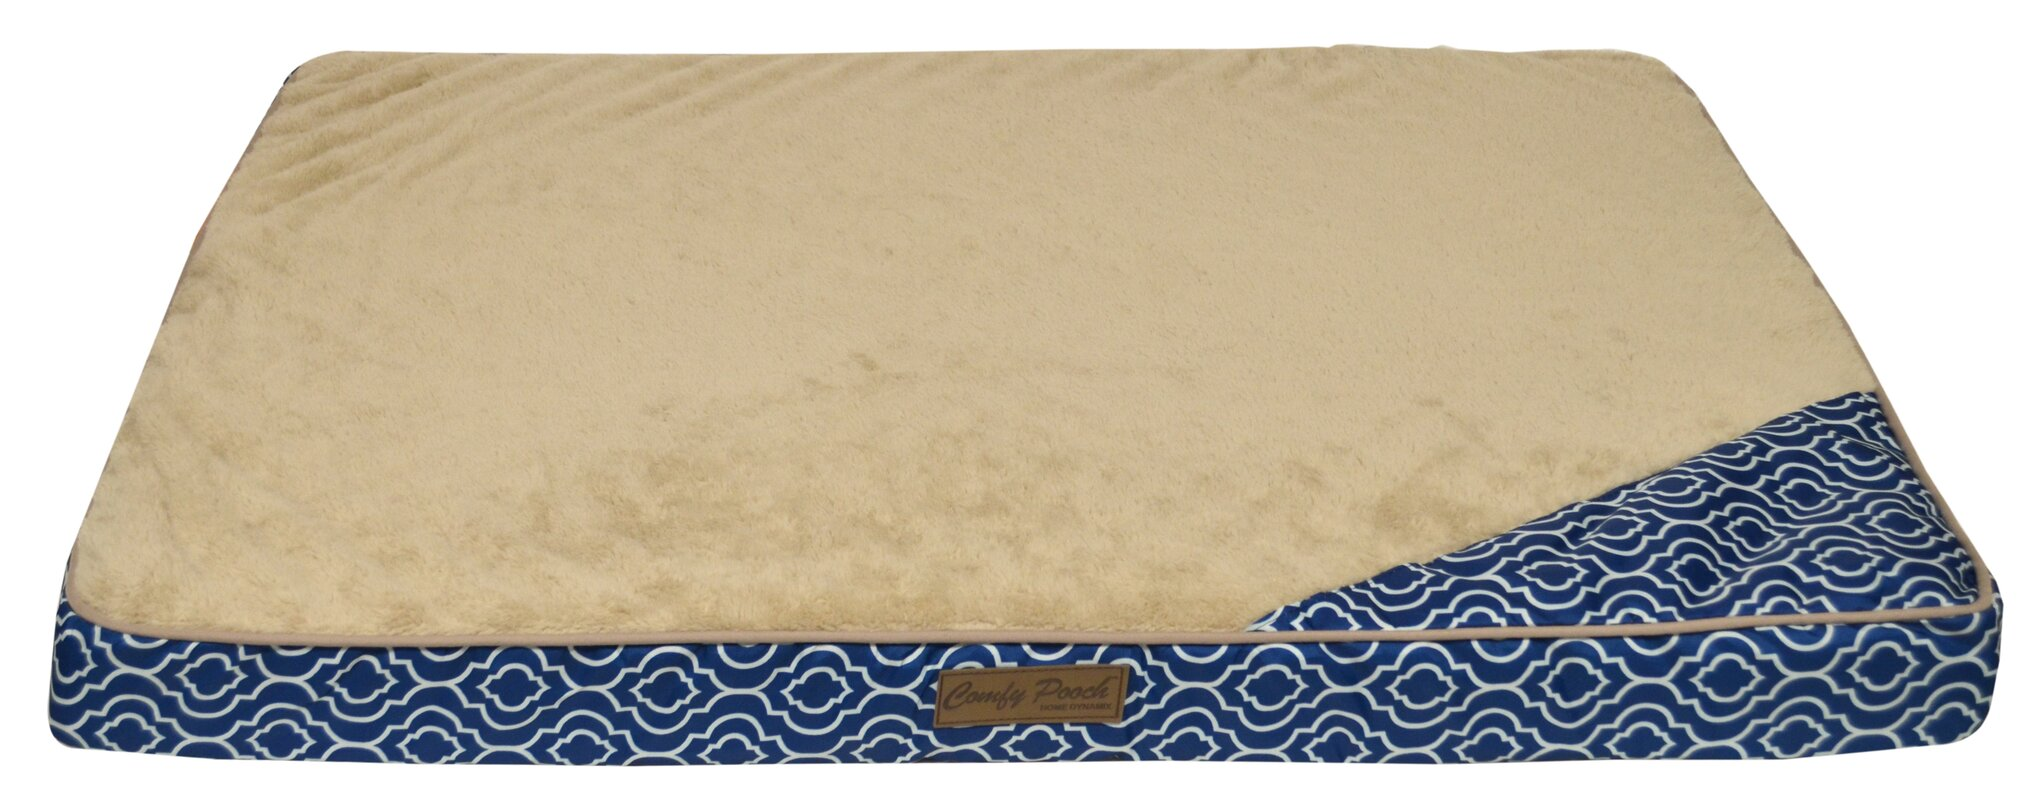 beatrice grey cooling home p crate mats gone camping gel in dog fashions mat